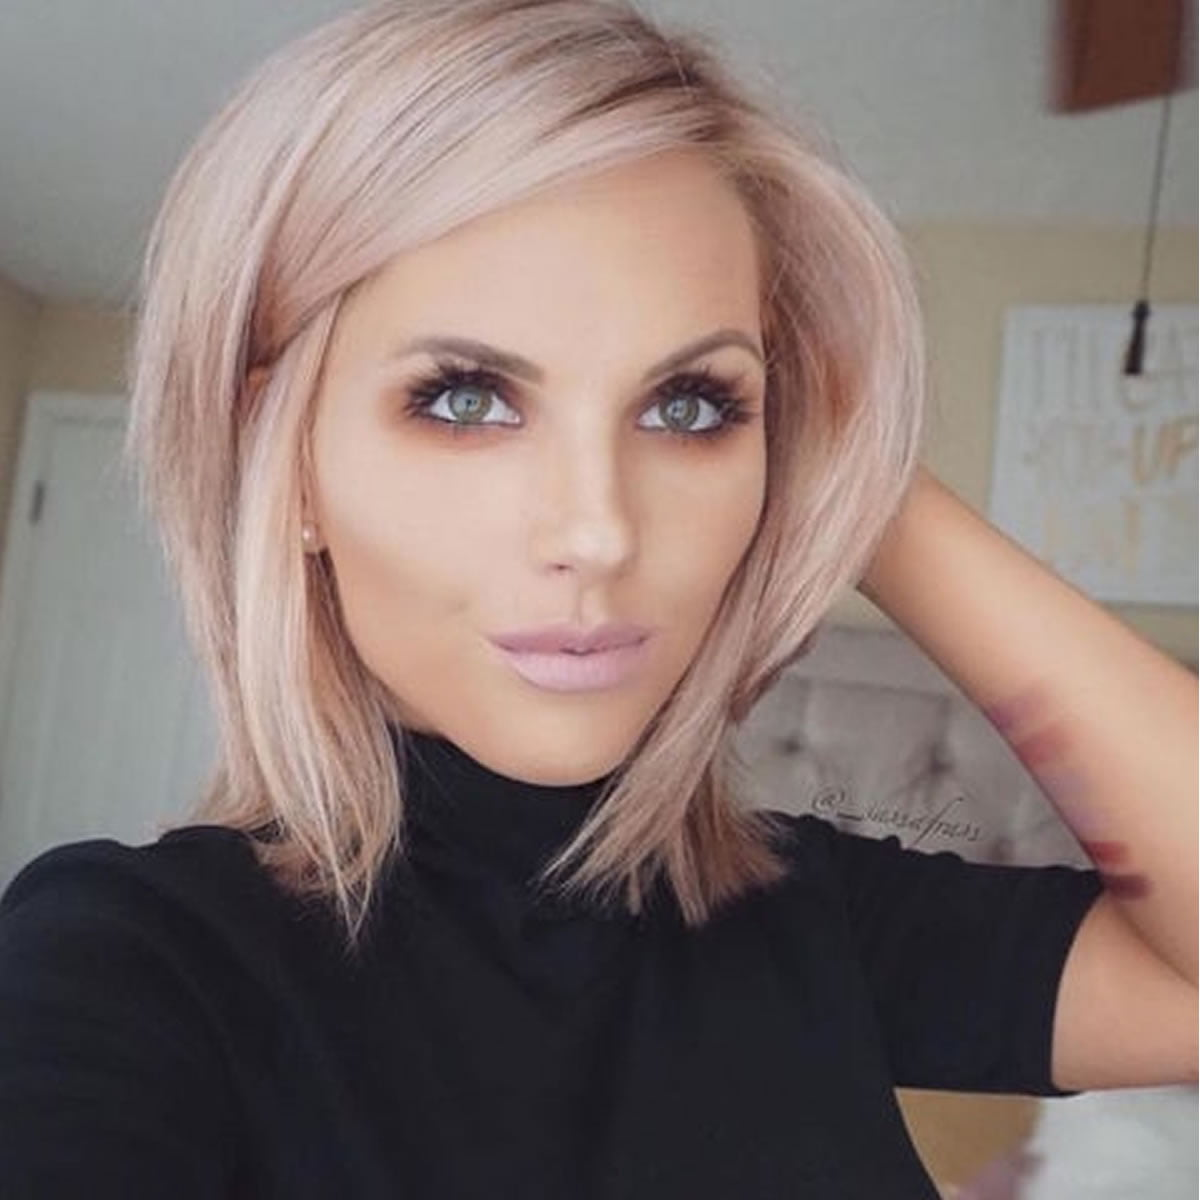 Top Hairstyles 2019: The Best 33 Short Bob Haircuts